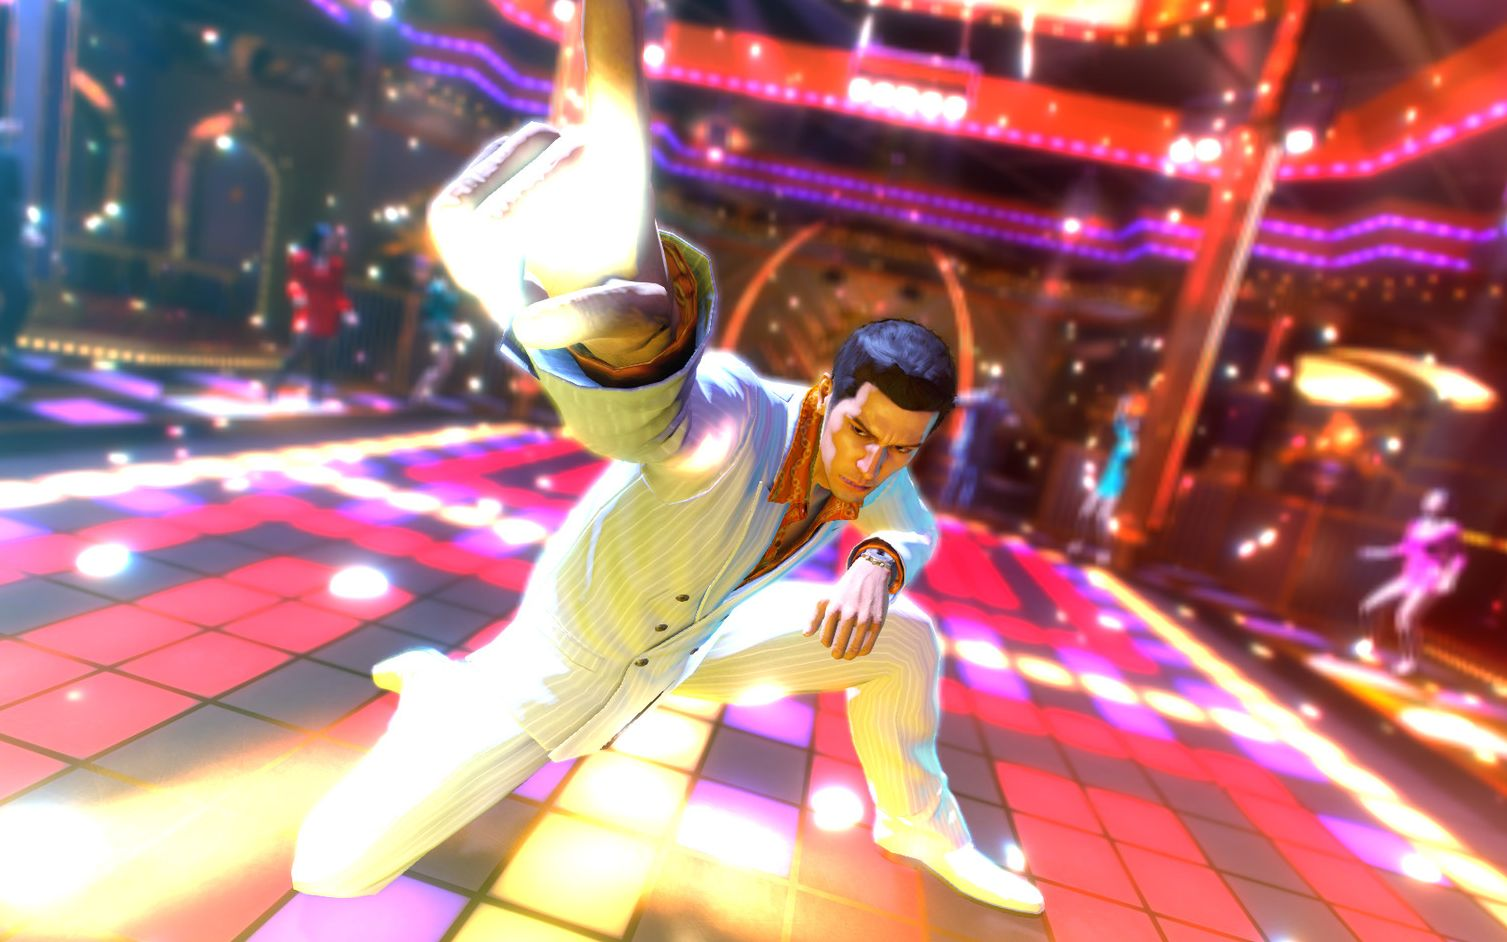 Yakuza 0 tips | PC Gamer